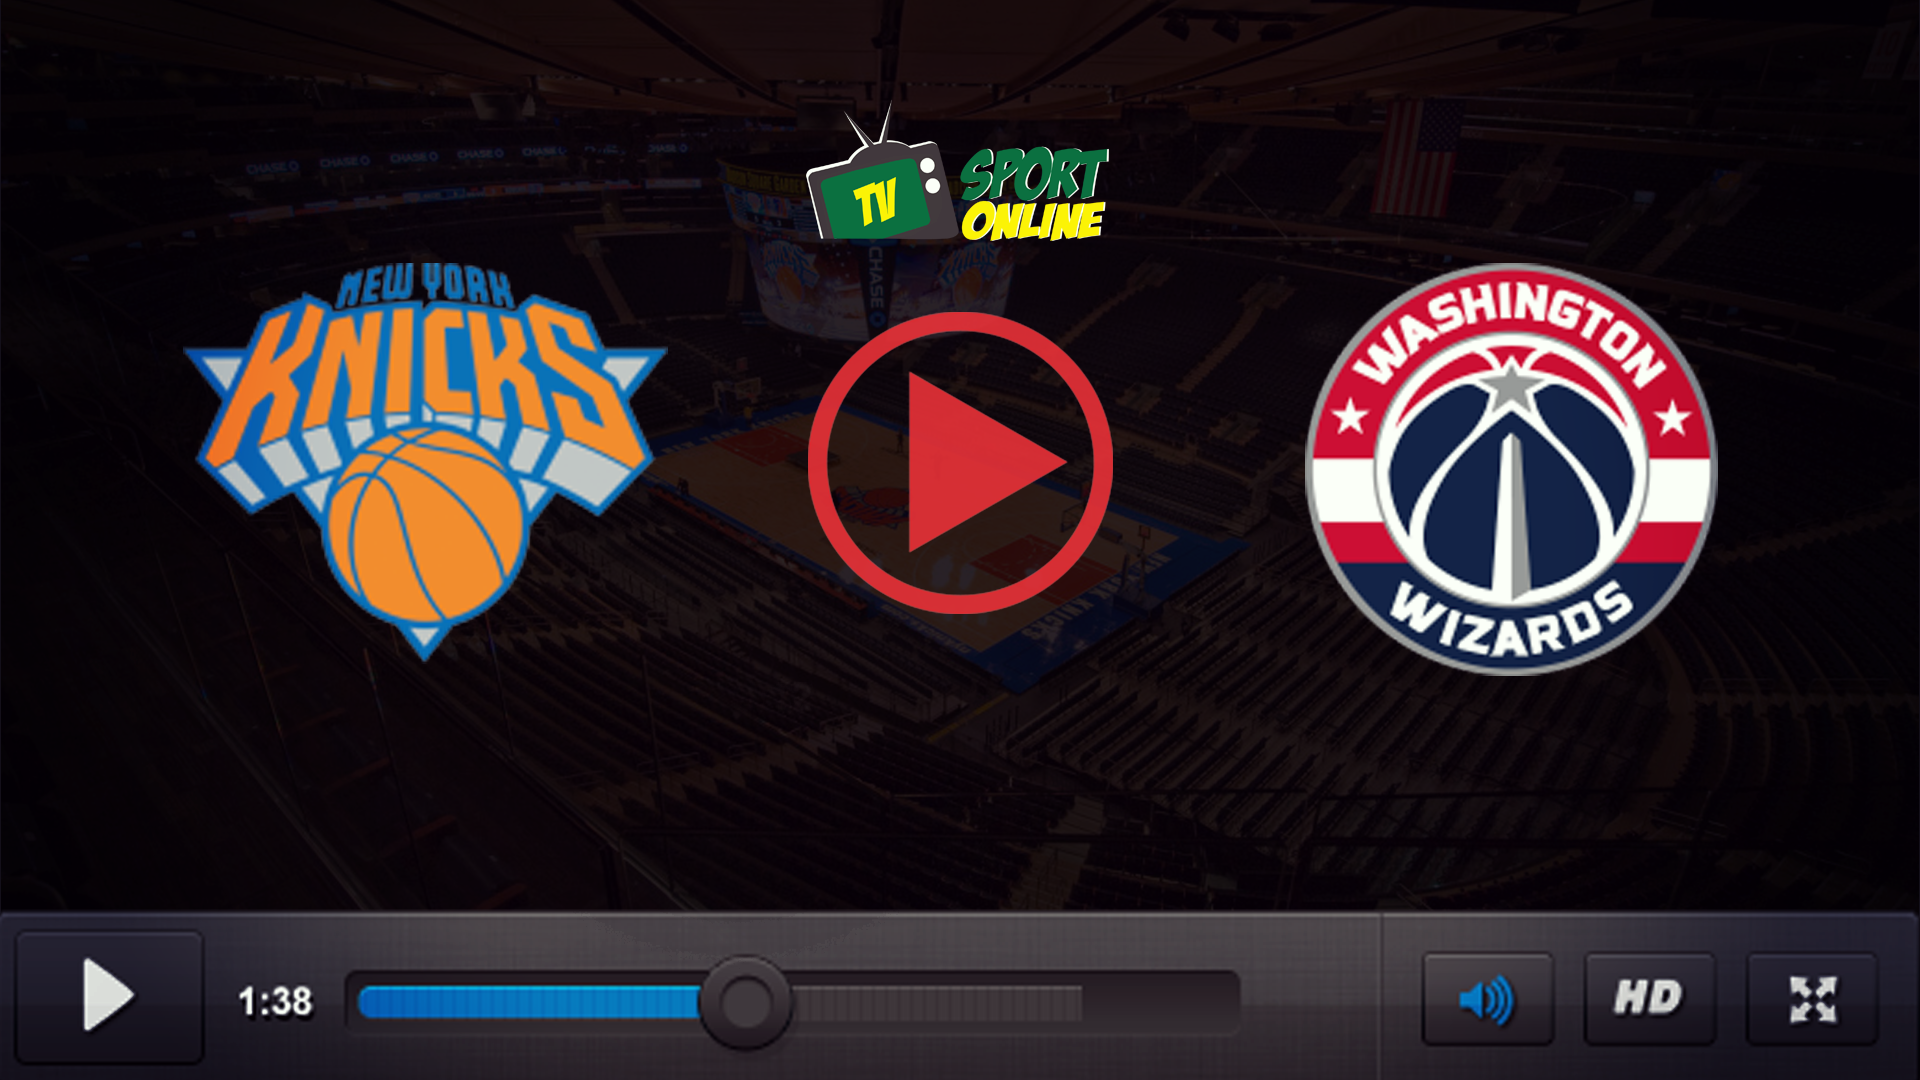 Watch Live Stream New York Knicks – Washington Wizards